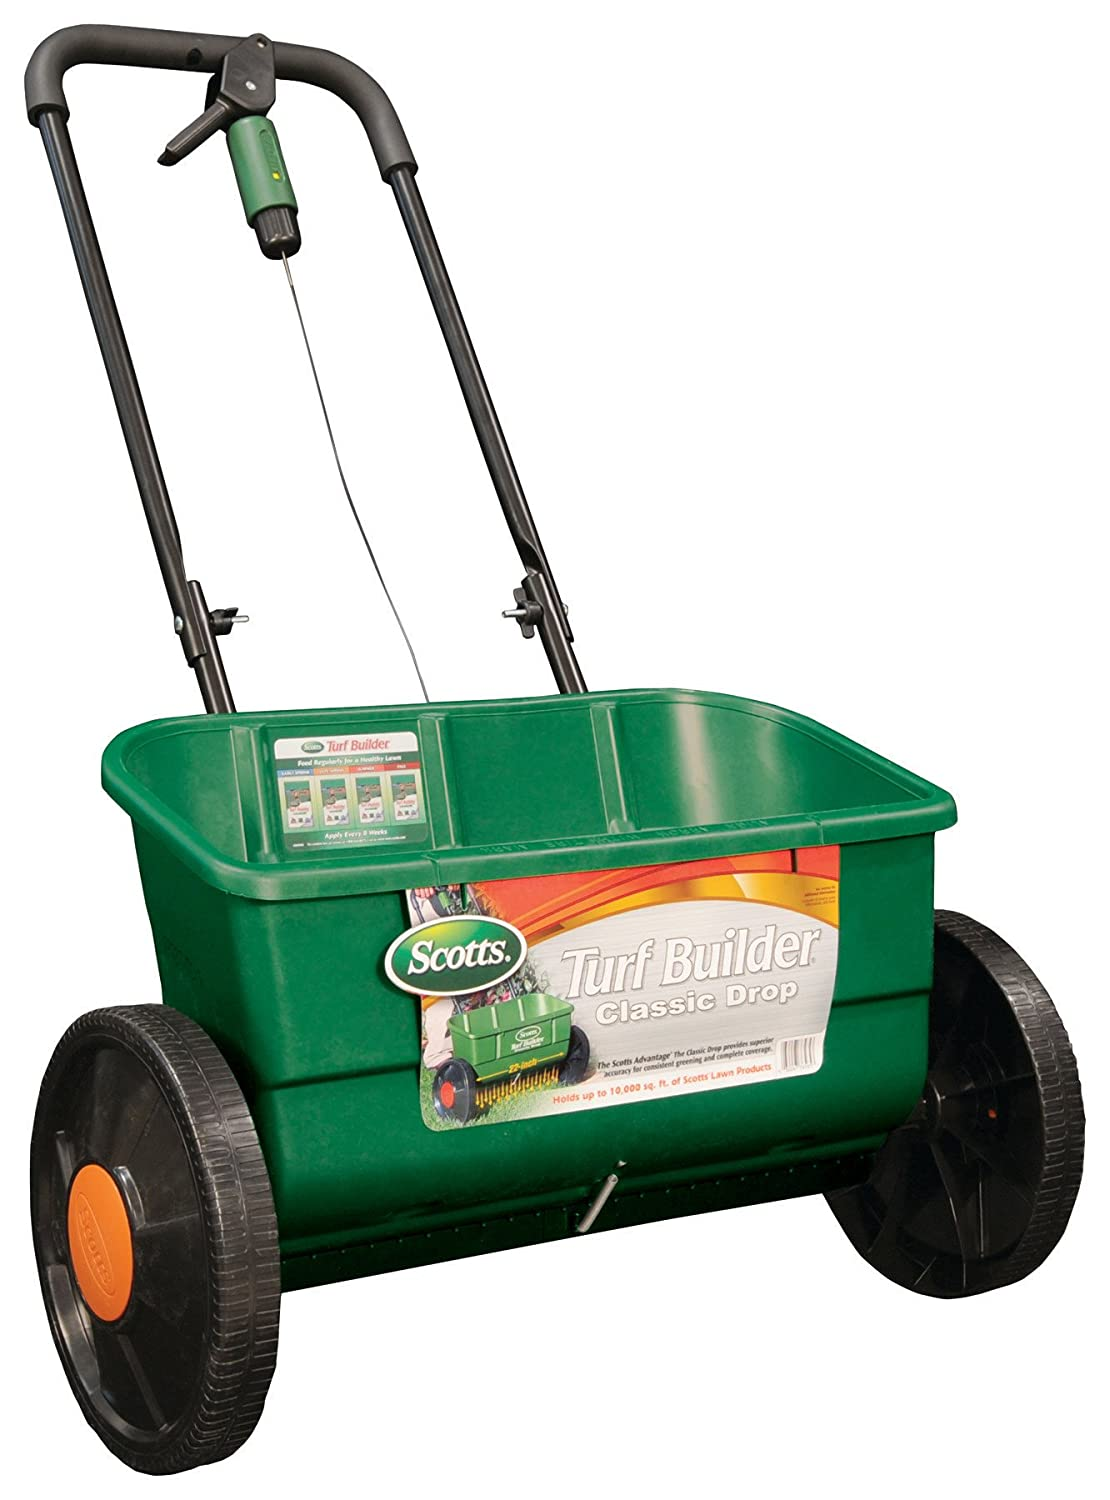 Scotts Turf Builder Classic Drop fertilizer Spreader,